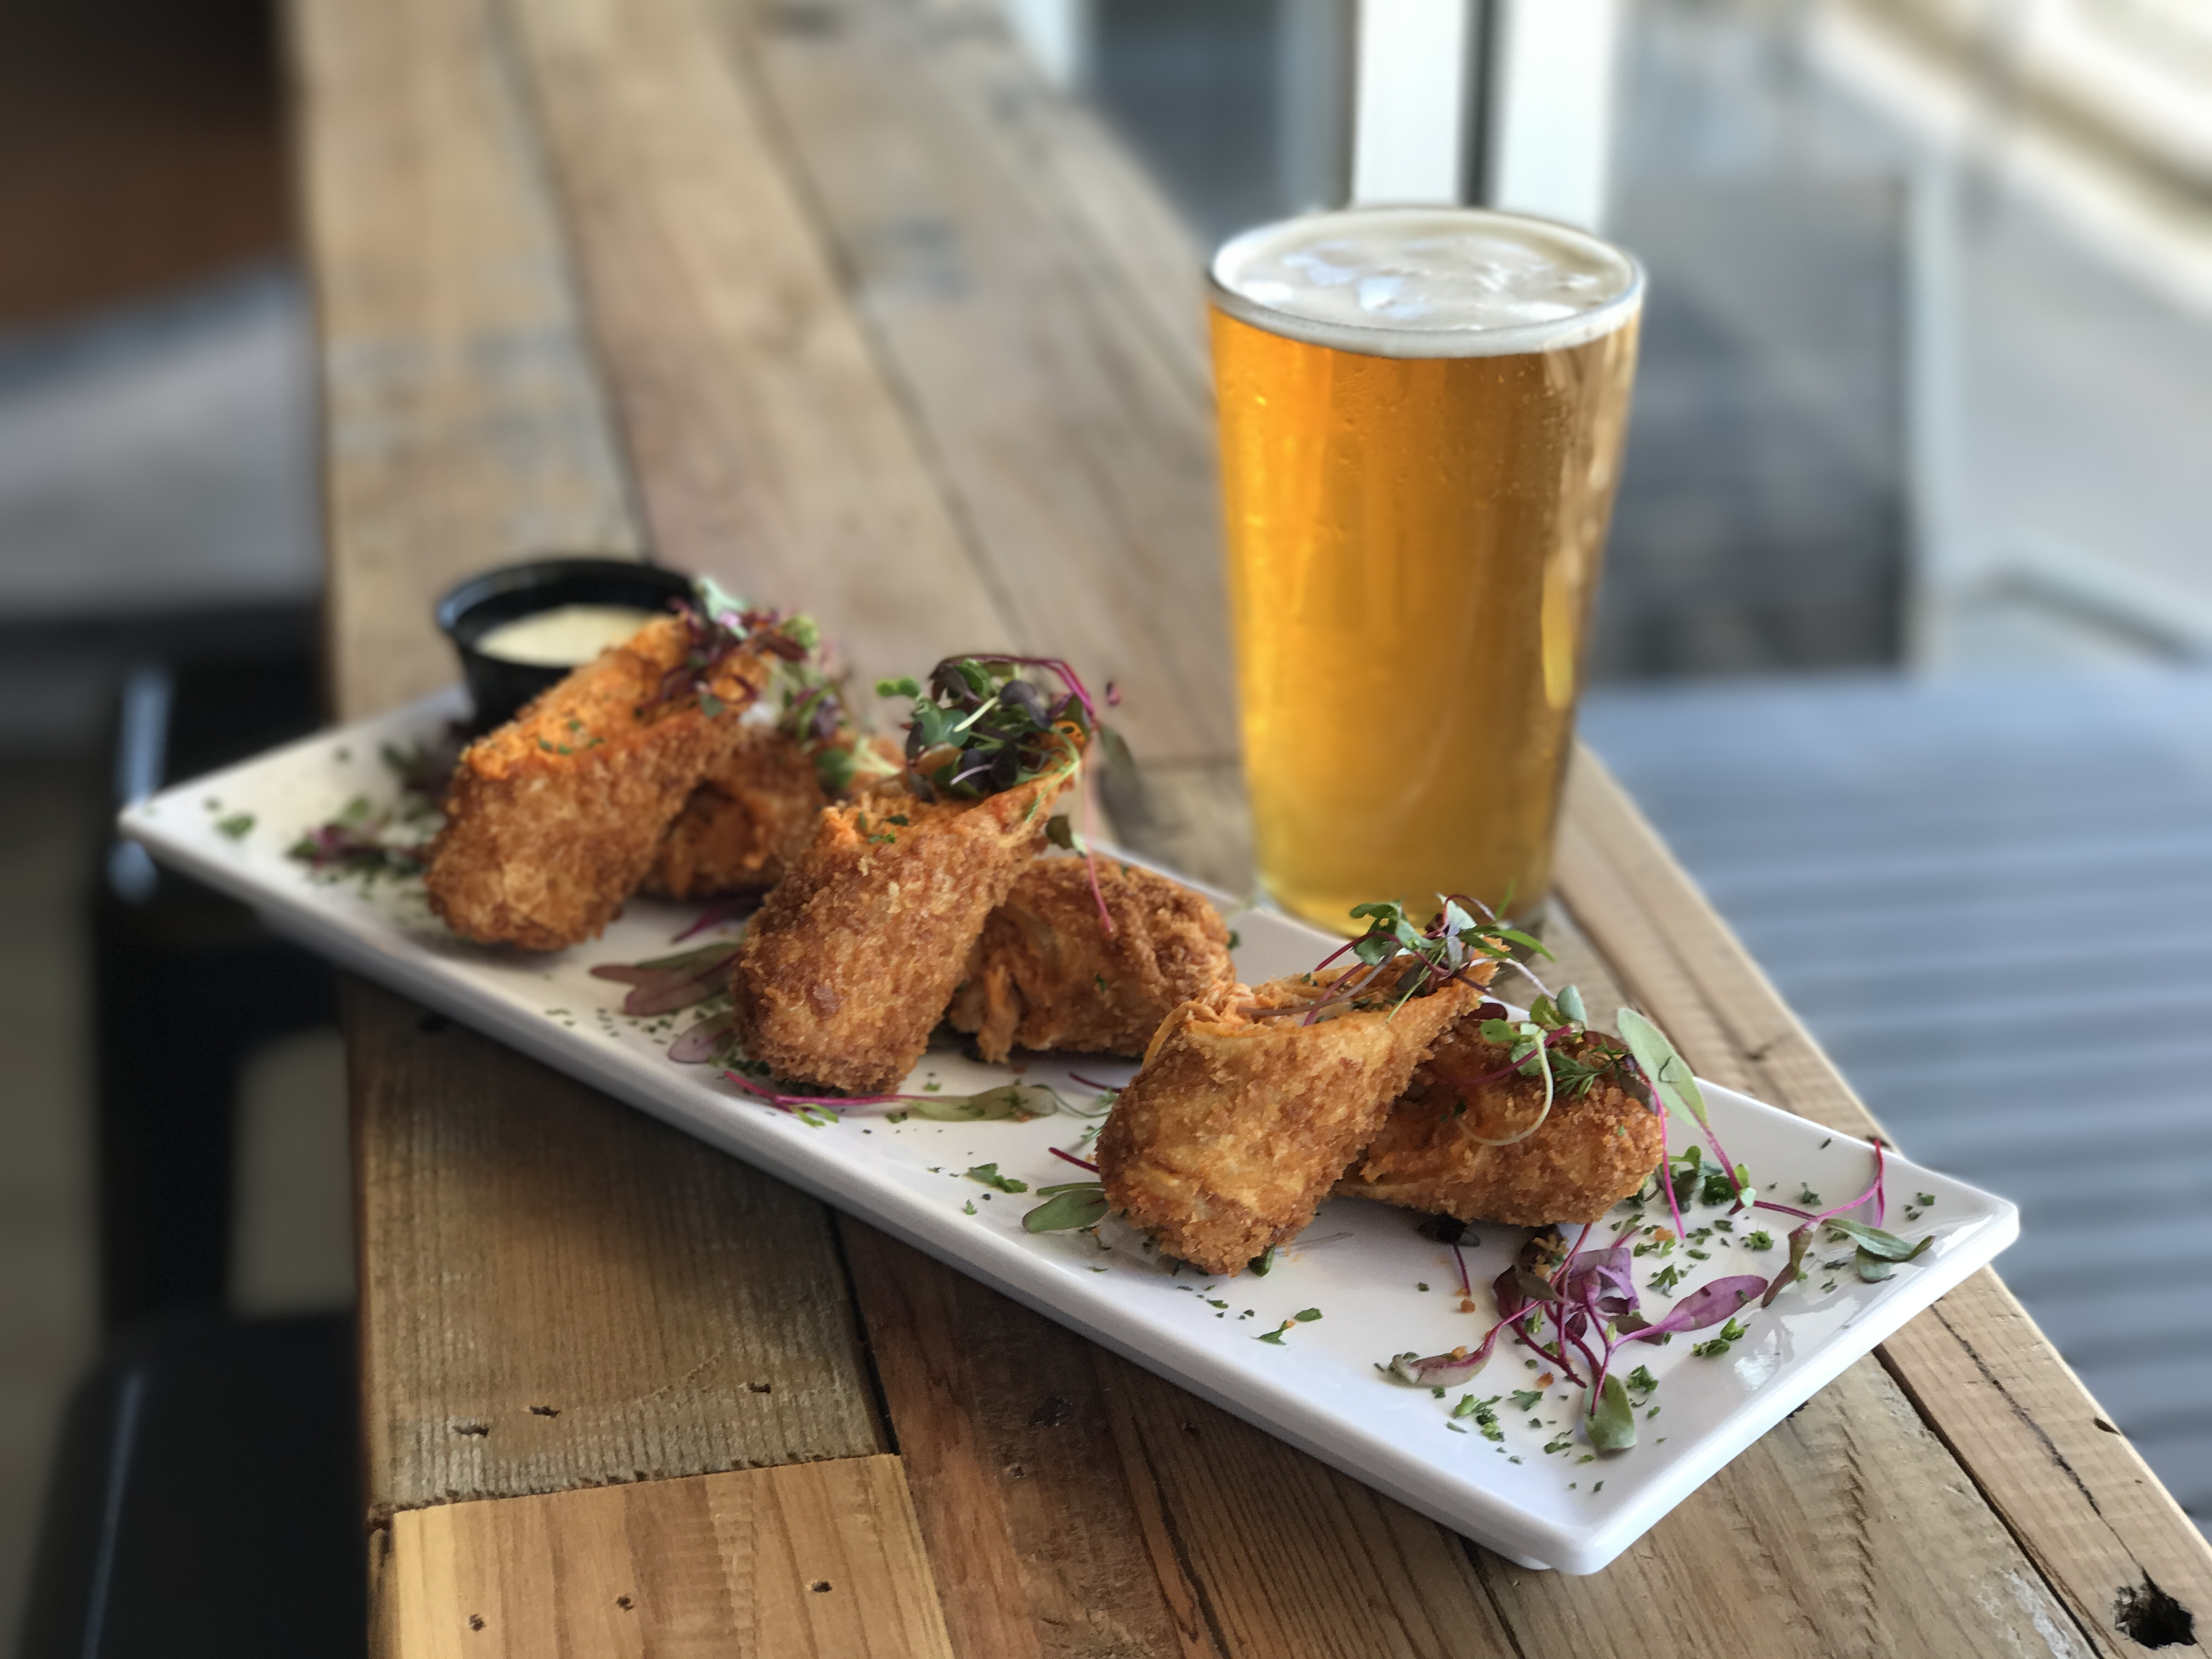 Best of Sacramento, CA & Things To Do Nearby - YP.com